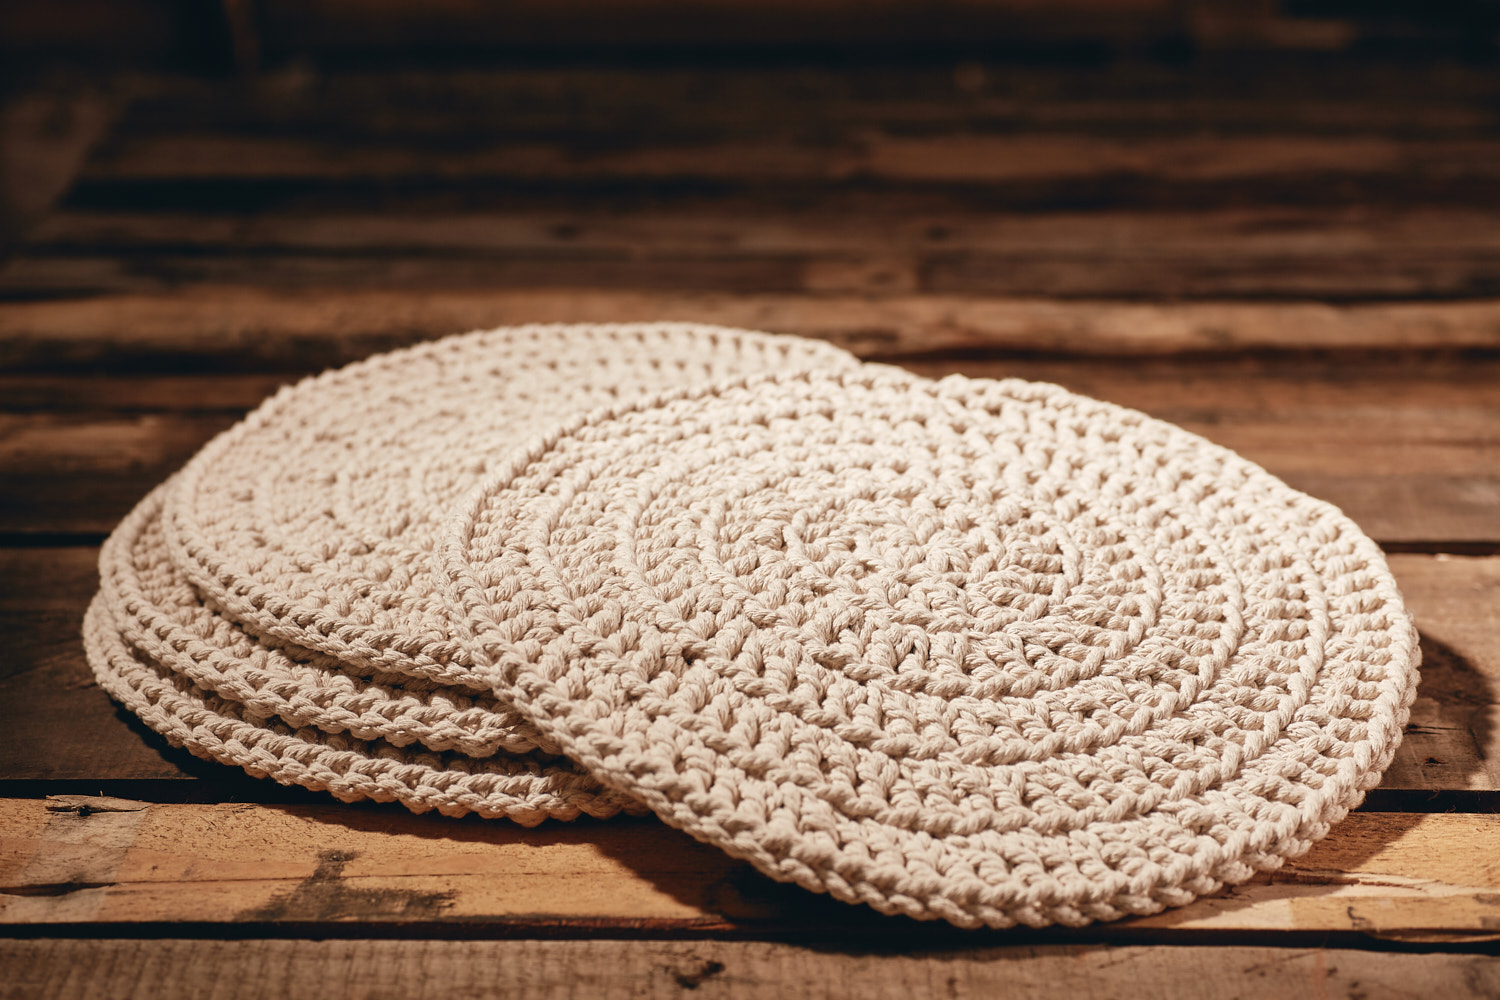 PLACEMATS - LARGE  Recycled Cotton (chunky) Set of 4  Hand-crocheted placemats Approximately 35cm in diameter.